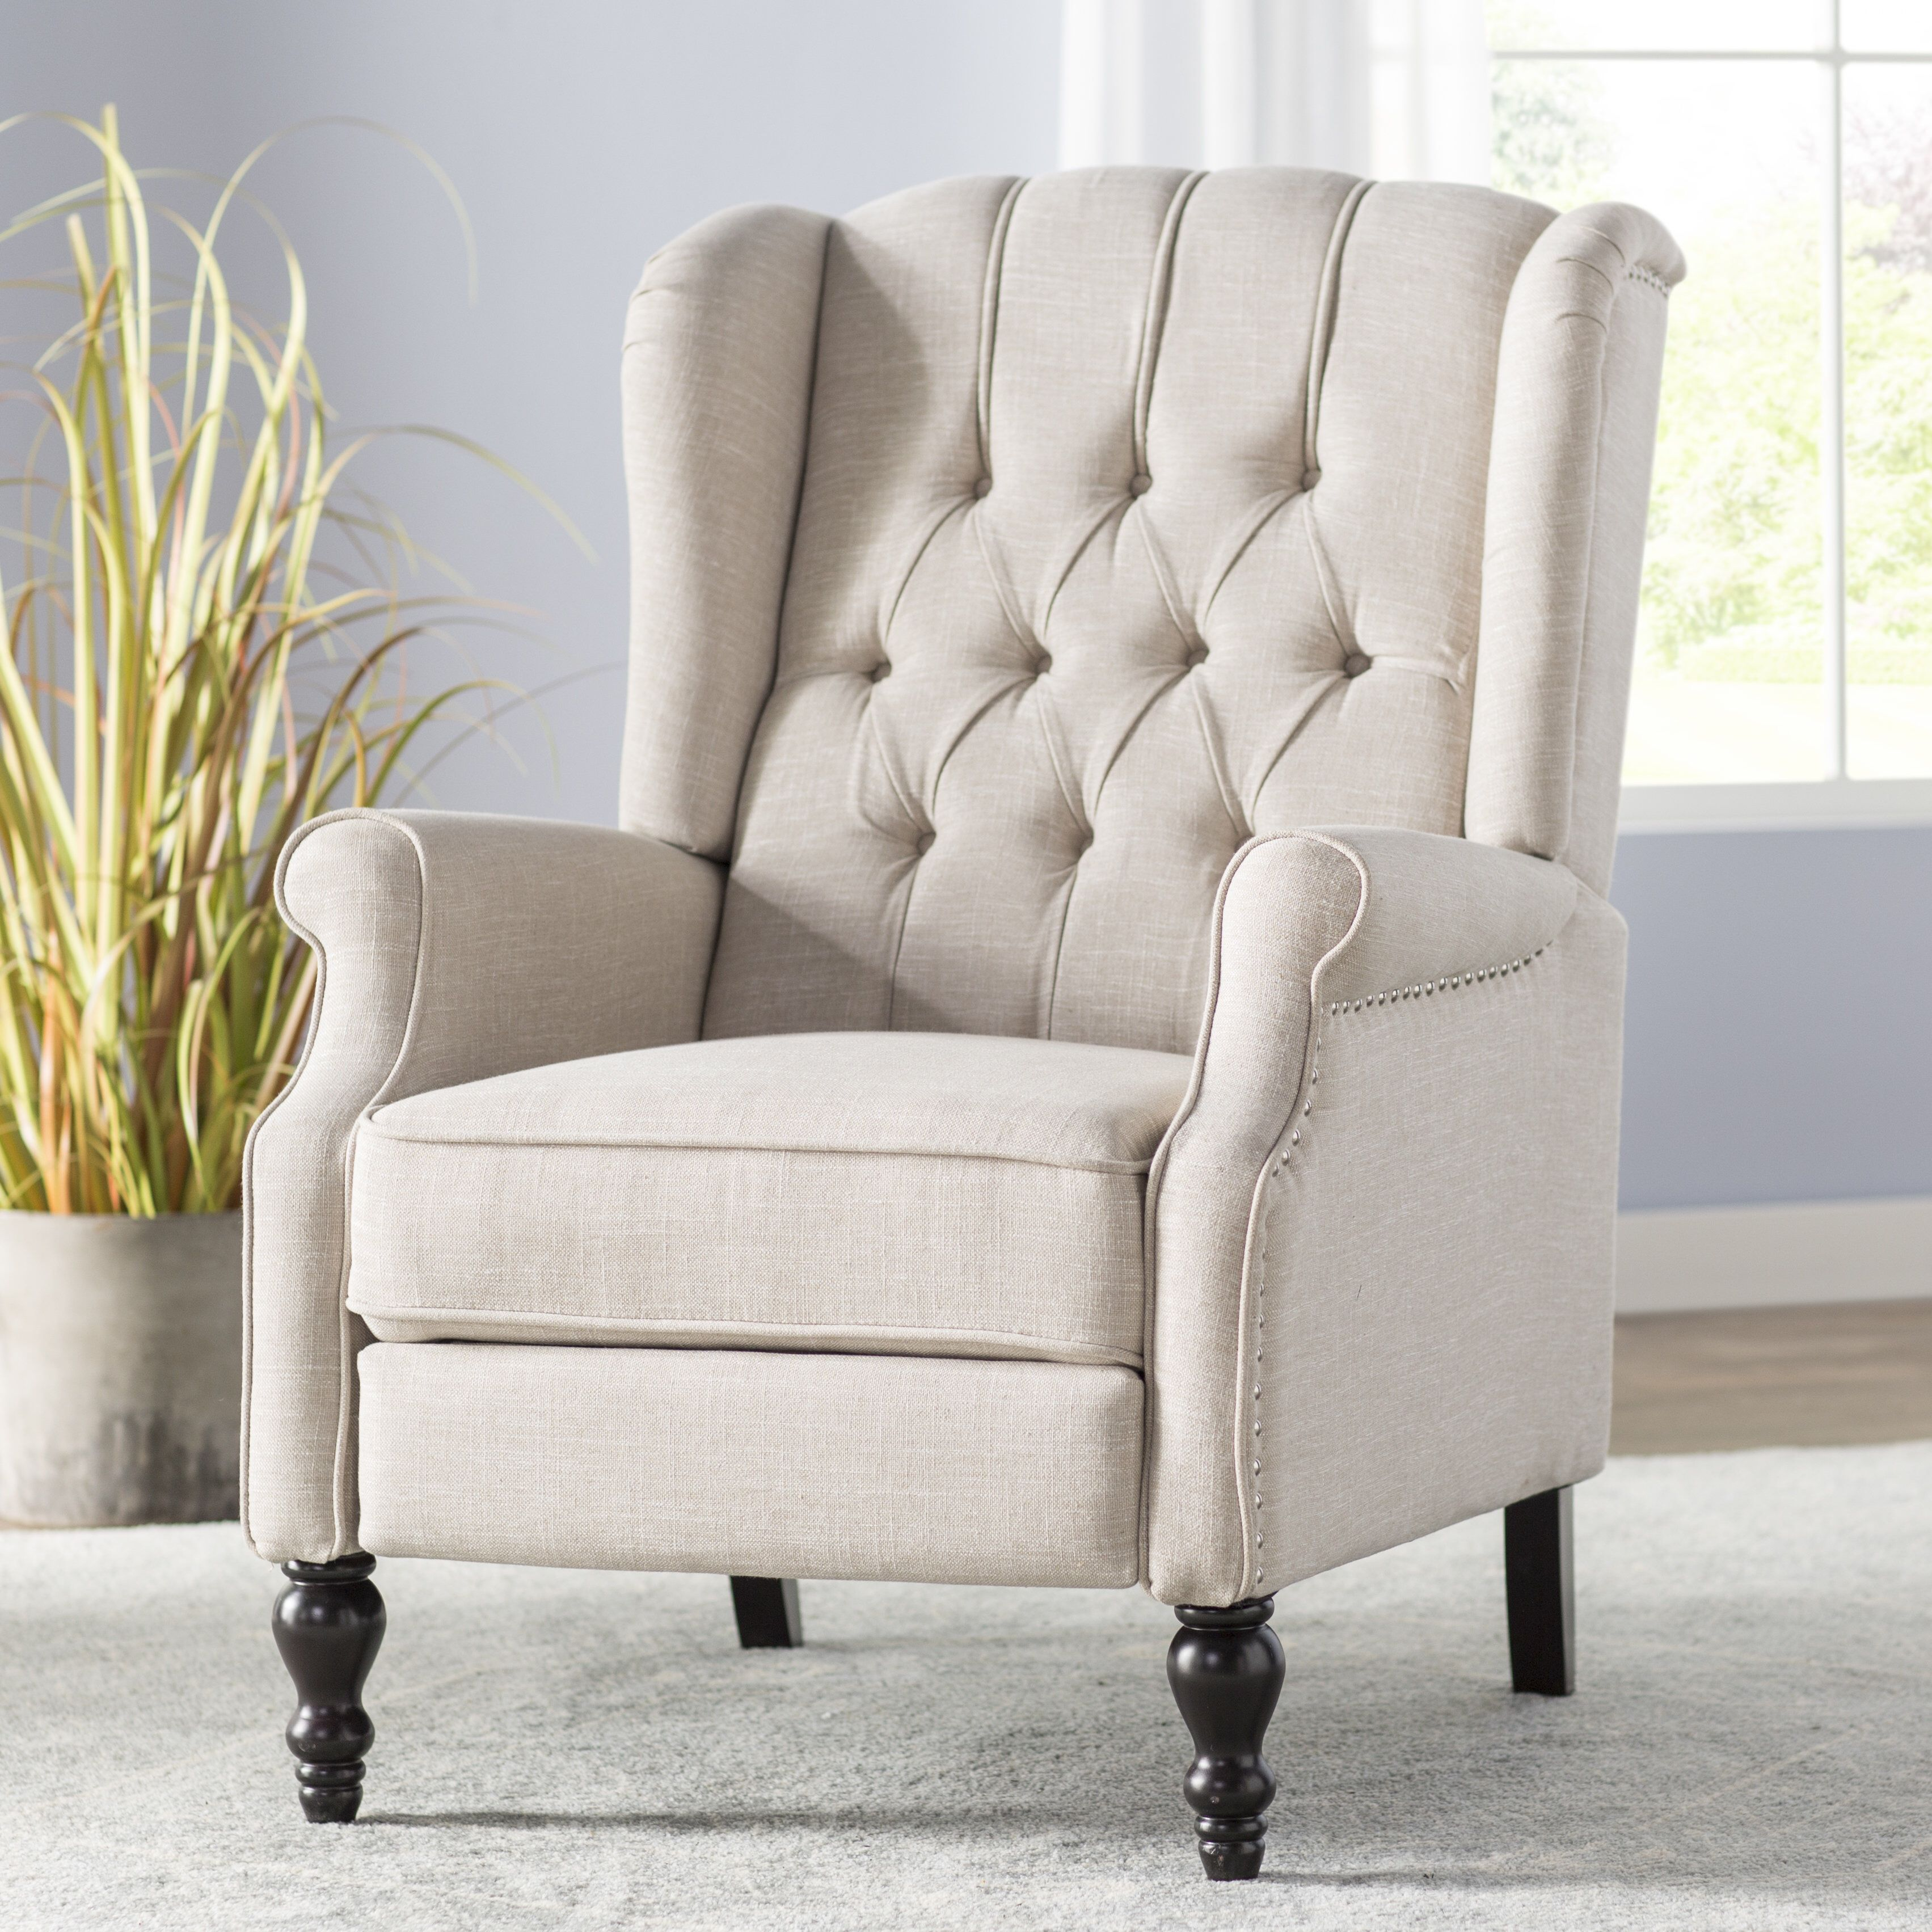 Awesome Henley Manual Recliner Living Room Recliner Furniture Bralicious Painted Fabric Chair Ideas Braliciousco